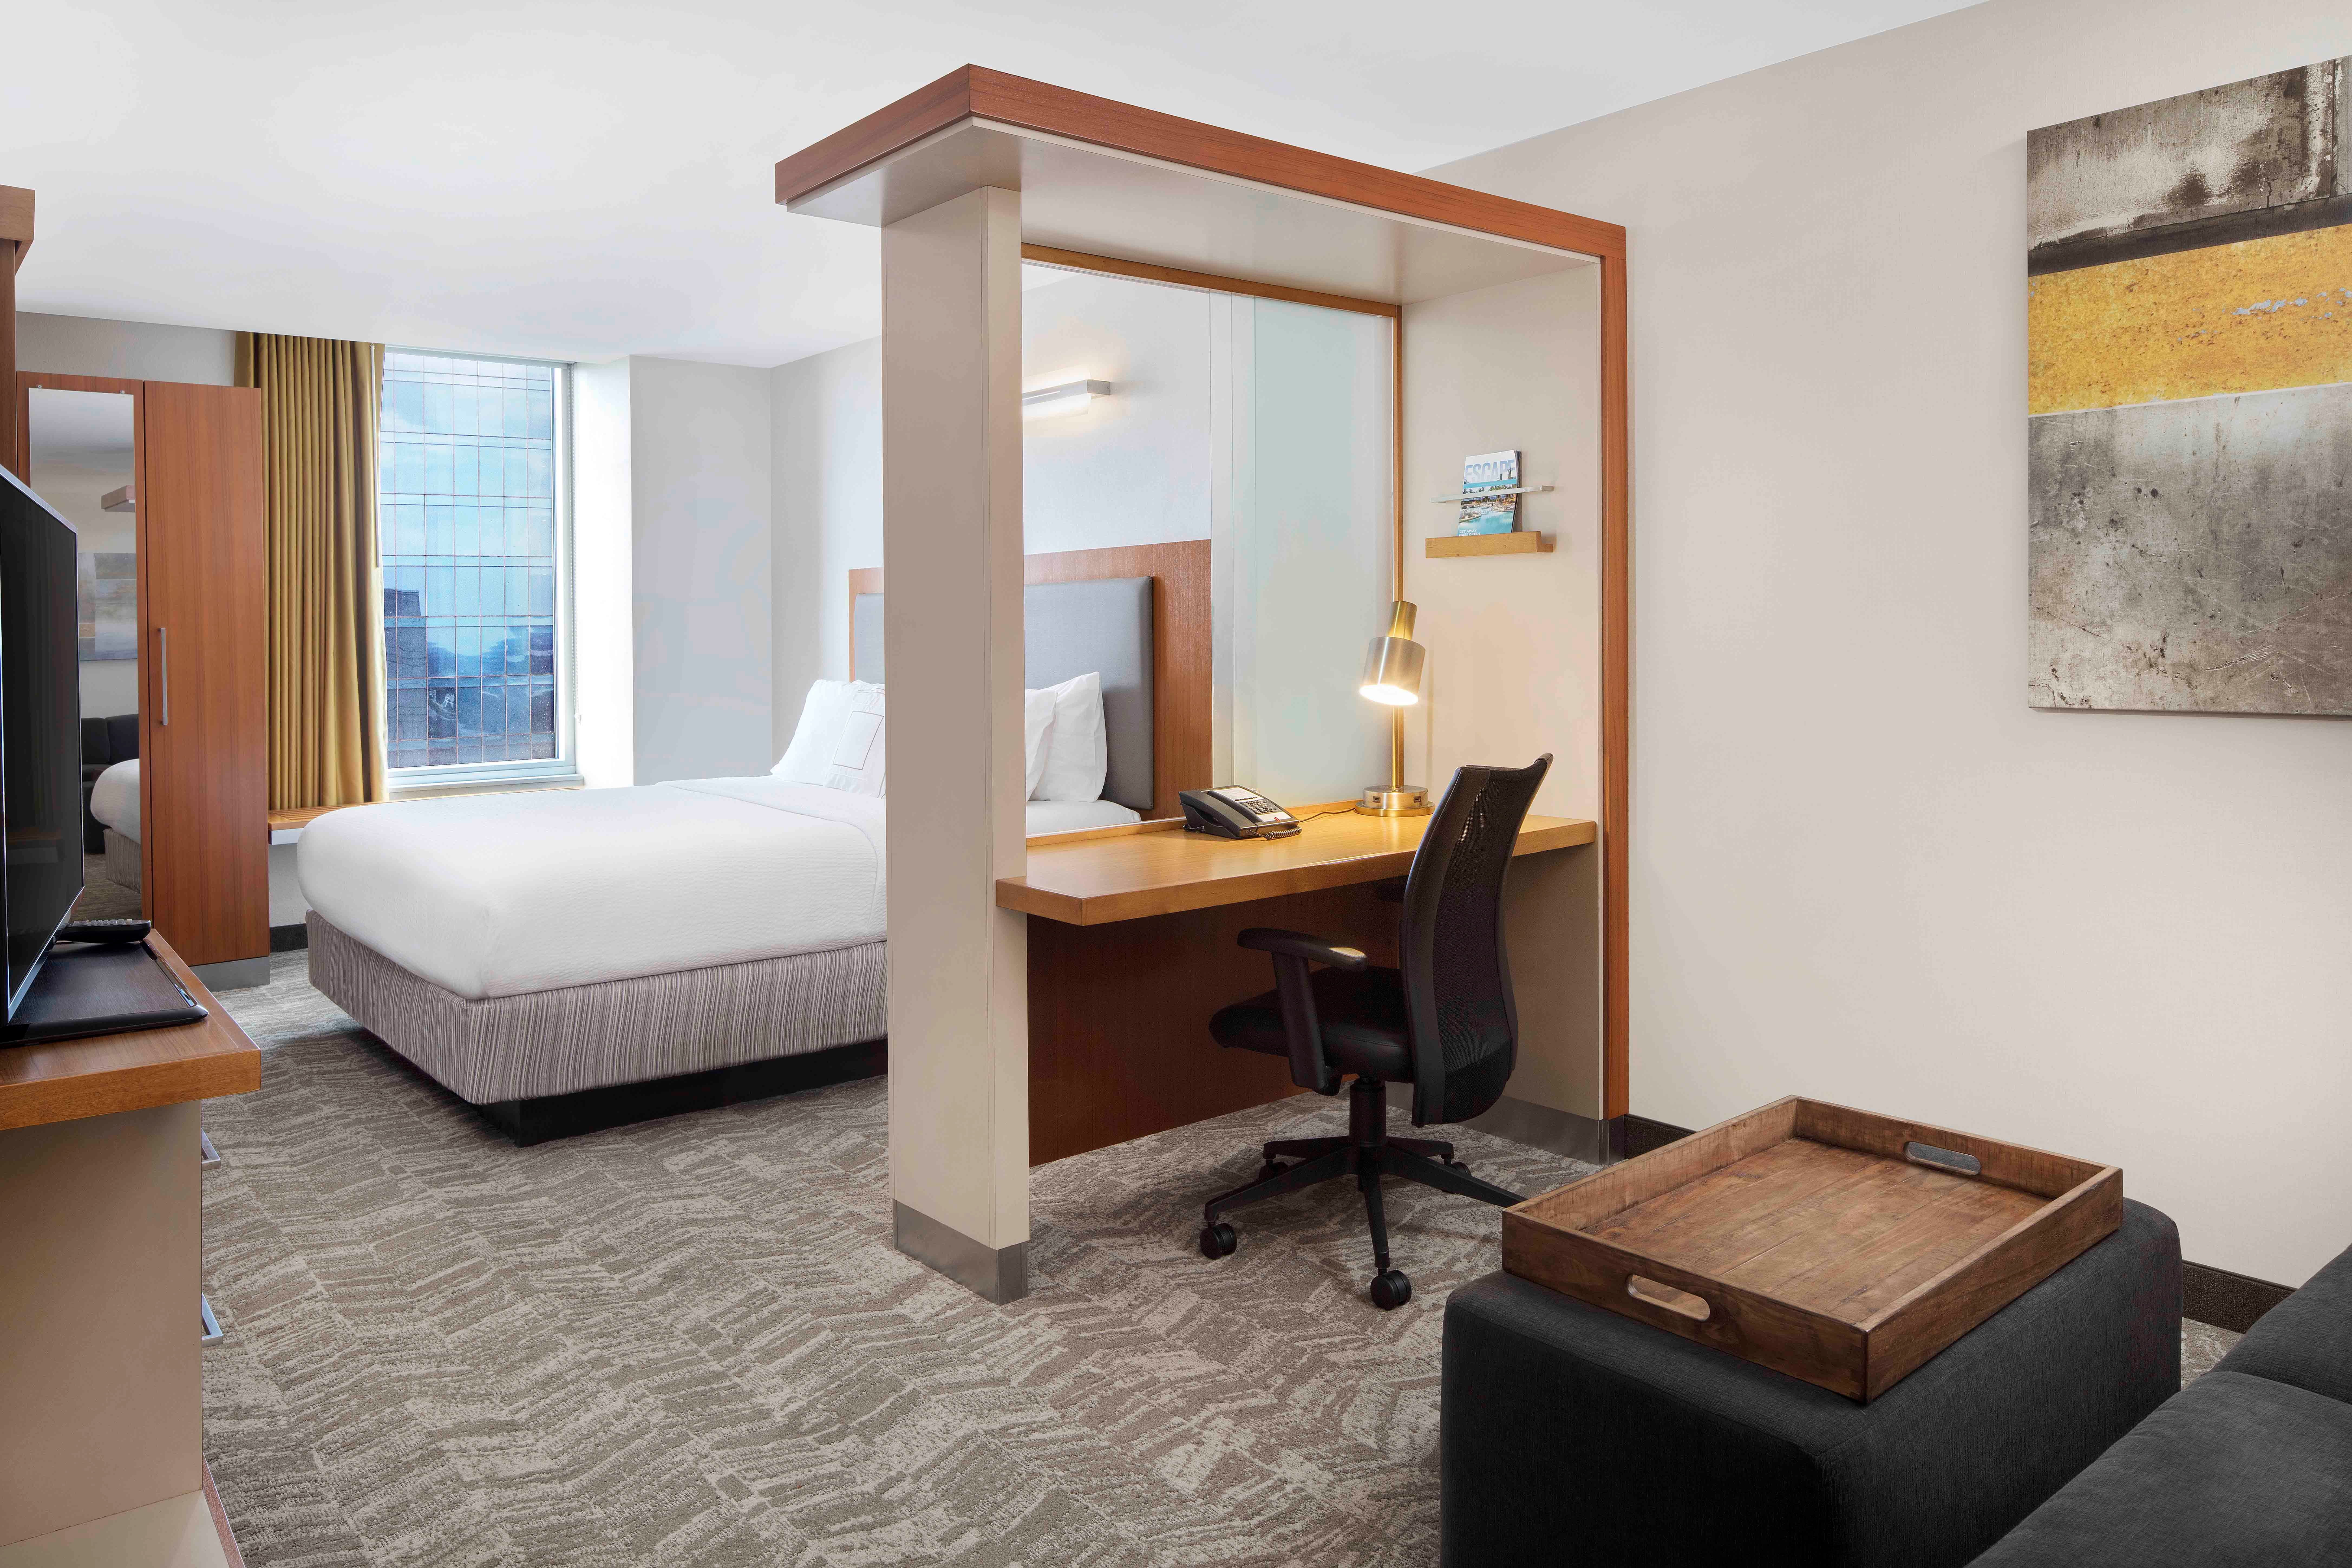 SpringHill Suites by Marriott Indianapolis Downtown image 15